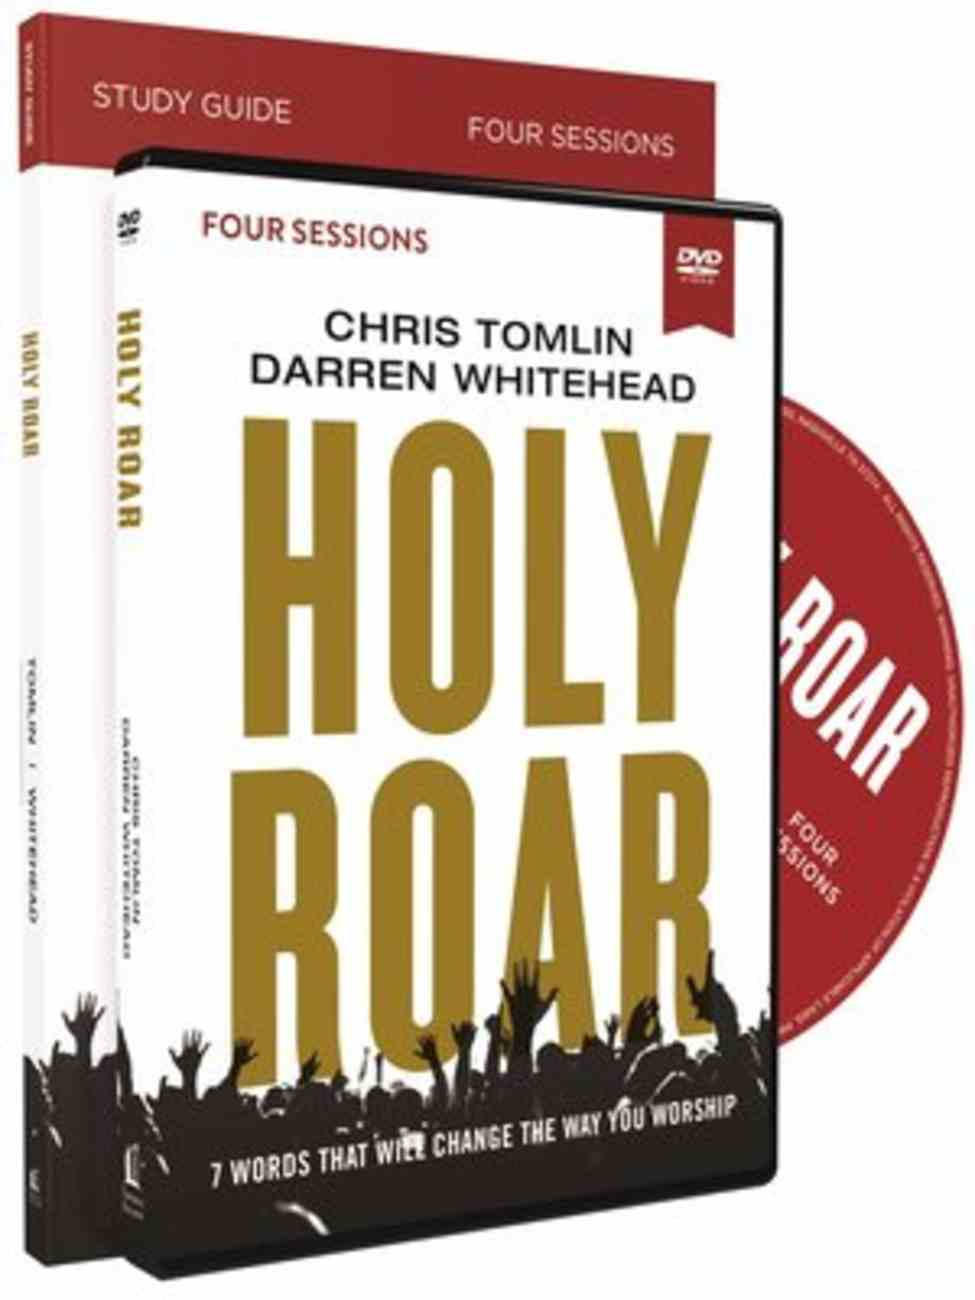 Holy Roar: Seven Words That Will Change the Way You Worship (Study Guide With Dvd) Paperback